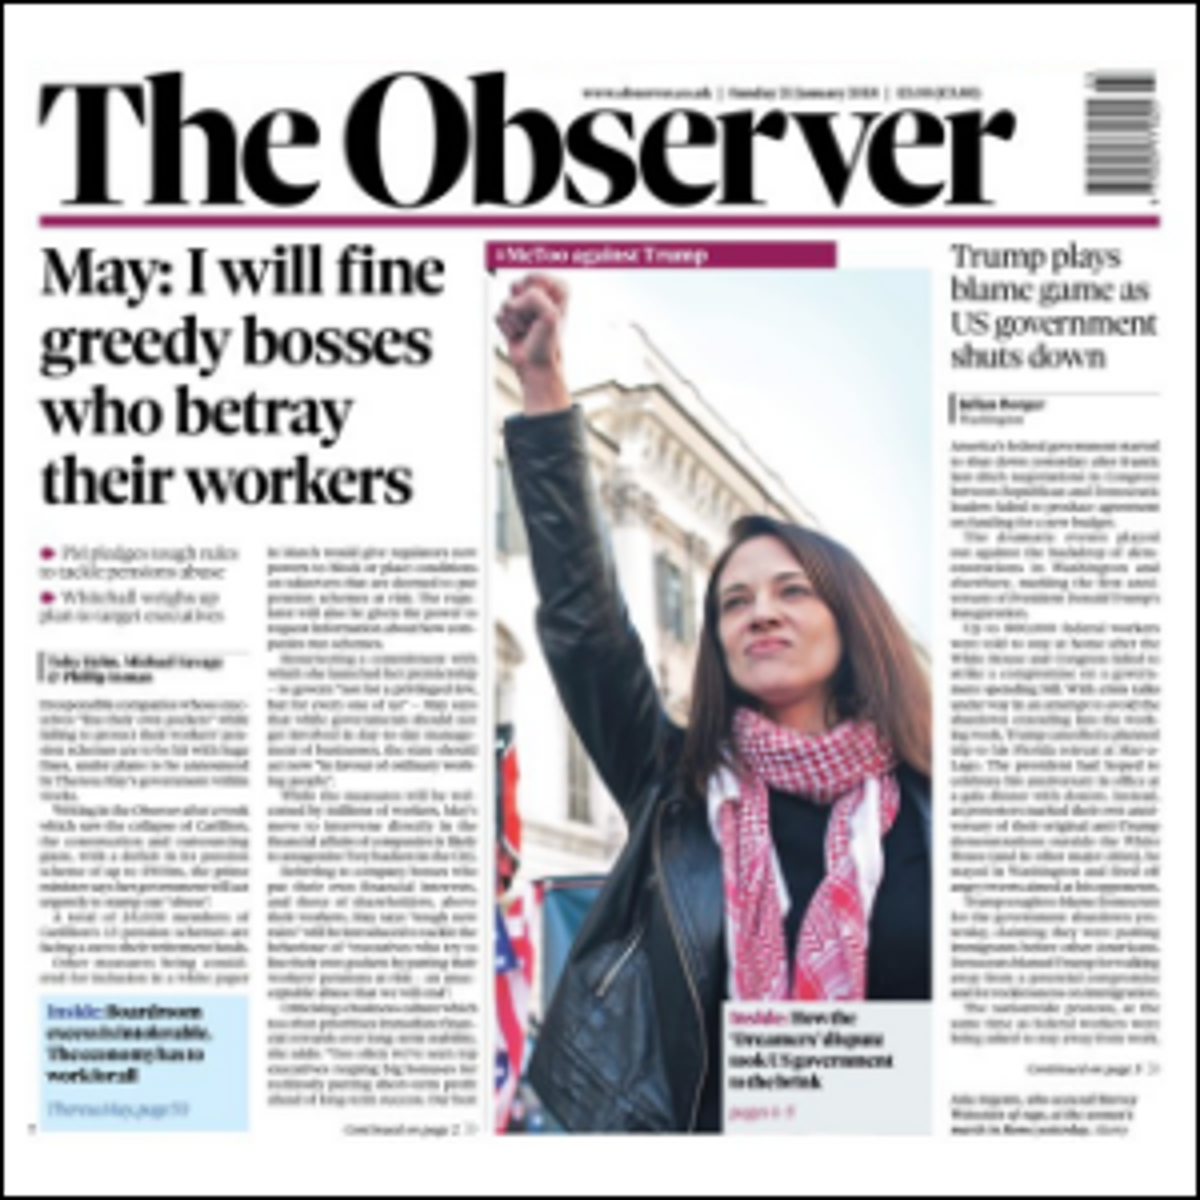 The front page of The Observer, January 21, 2018.